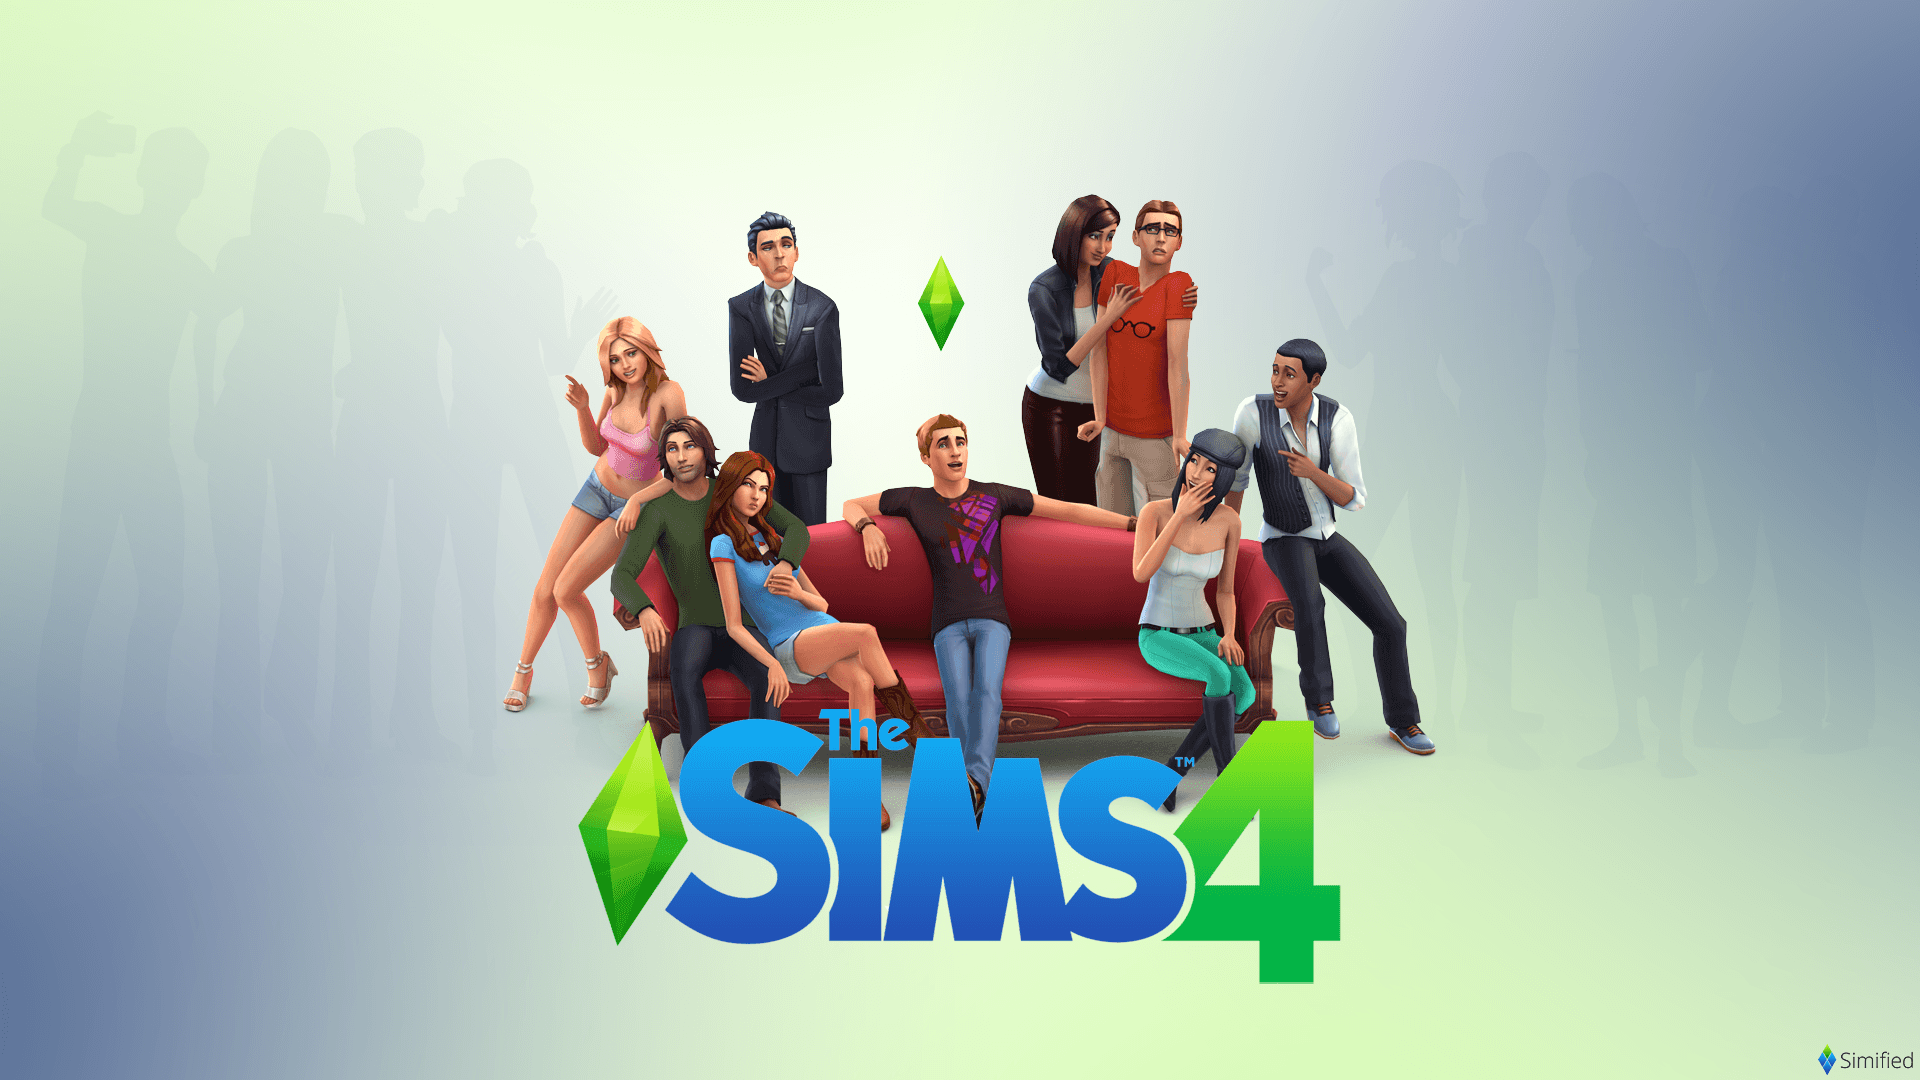 sims 4 backgrounds - photo #29